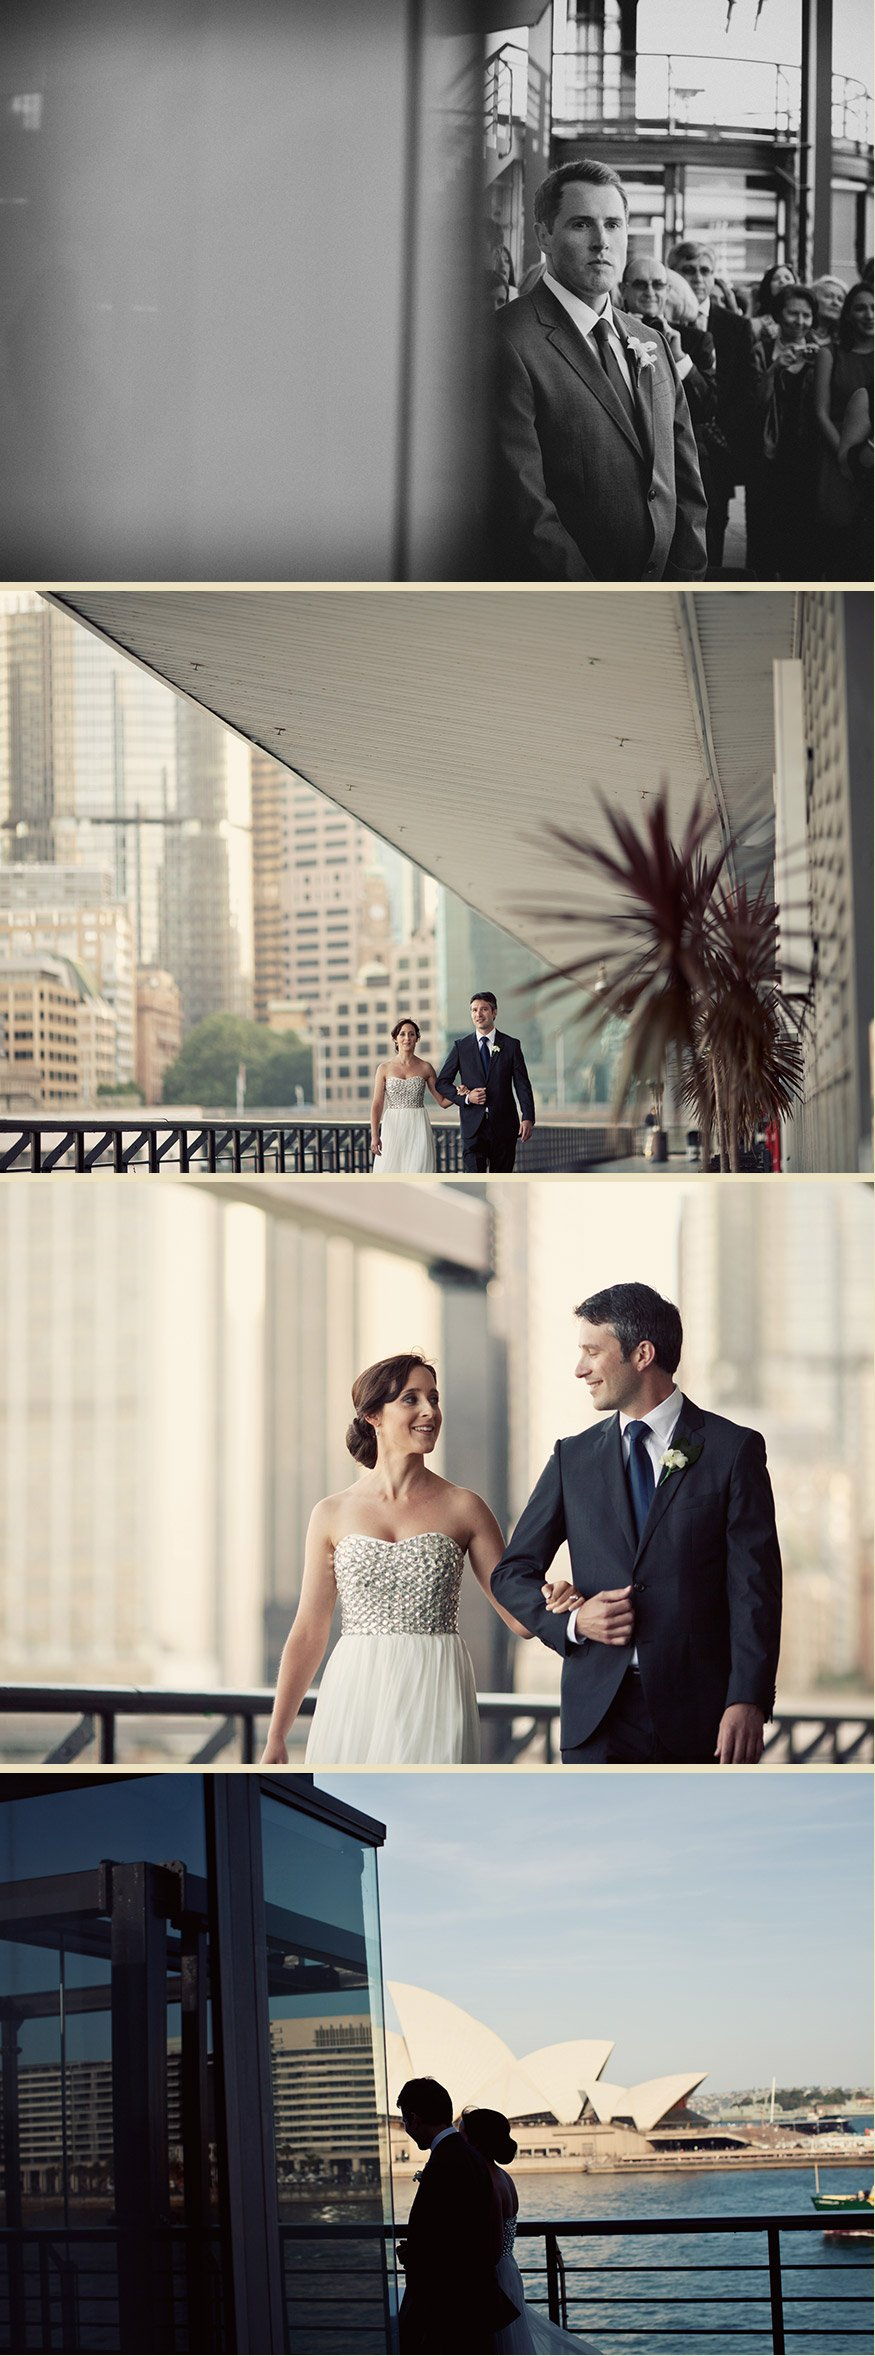 Brisbane Wedding Phoographer Blog-collage-1323408496165